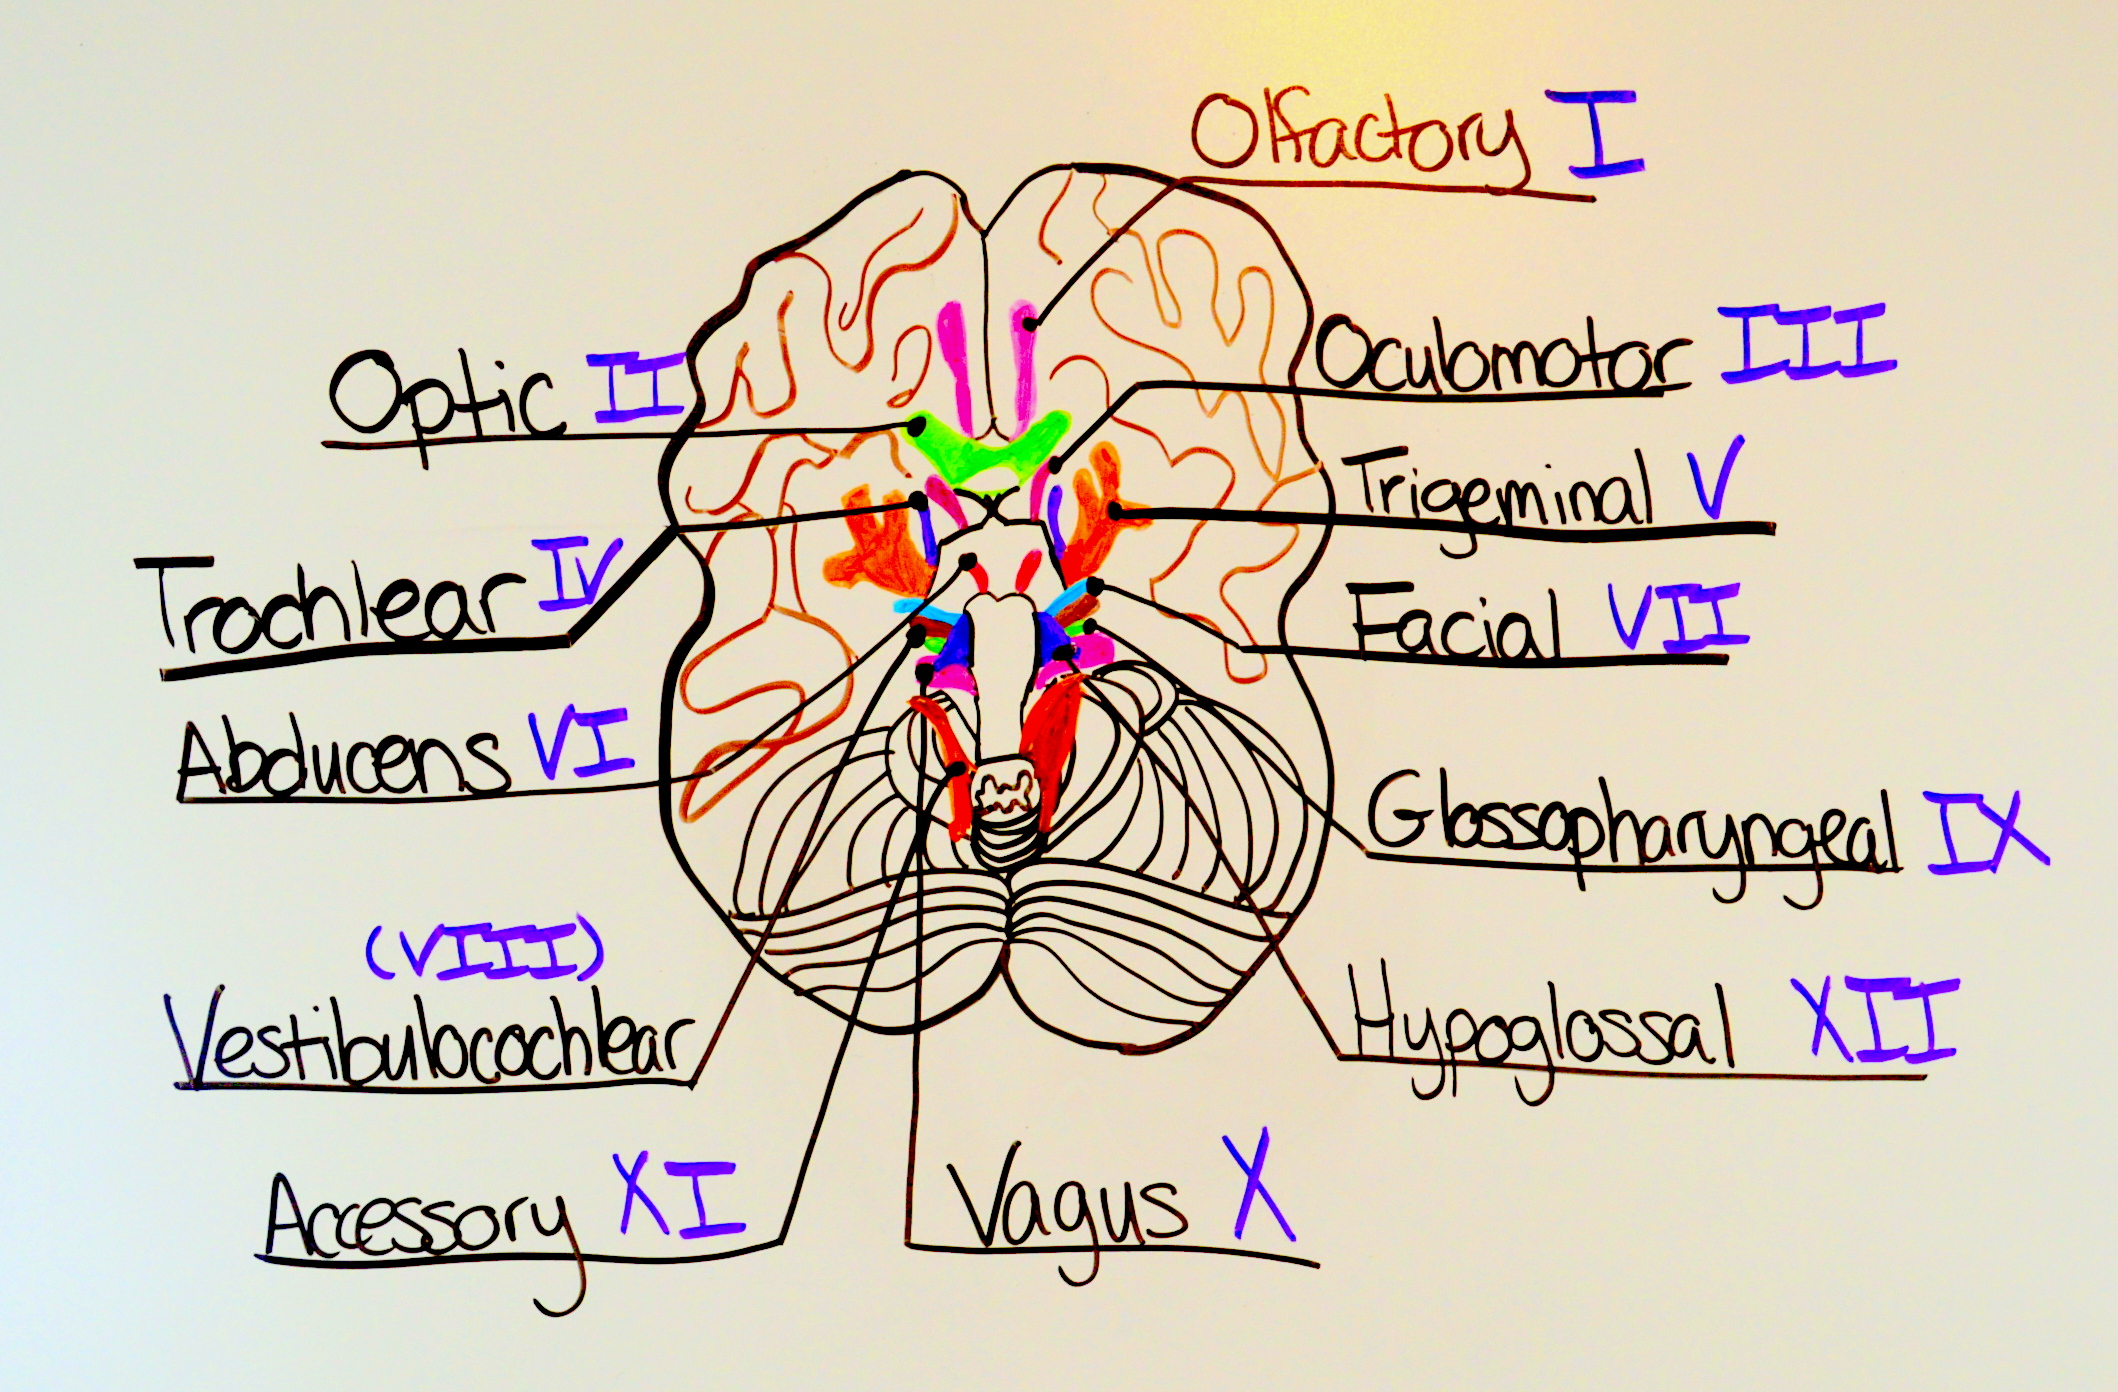 How To Remember The Cranial Nerves